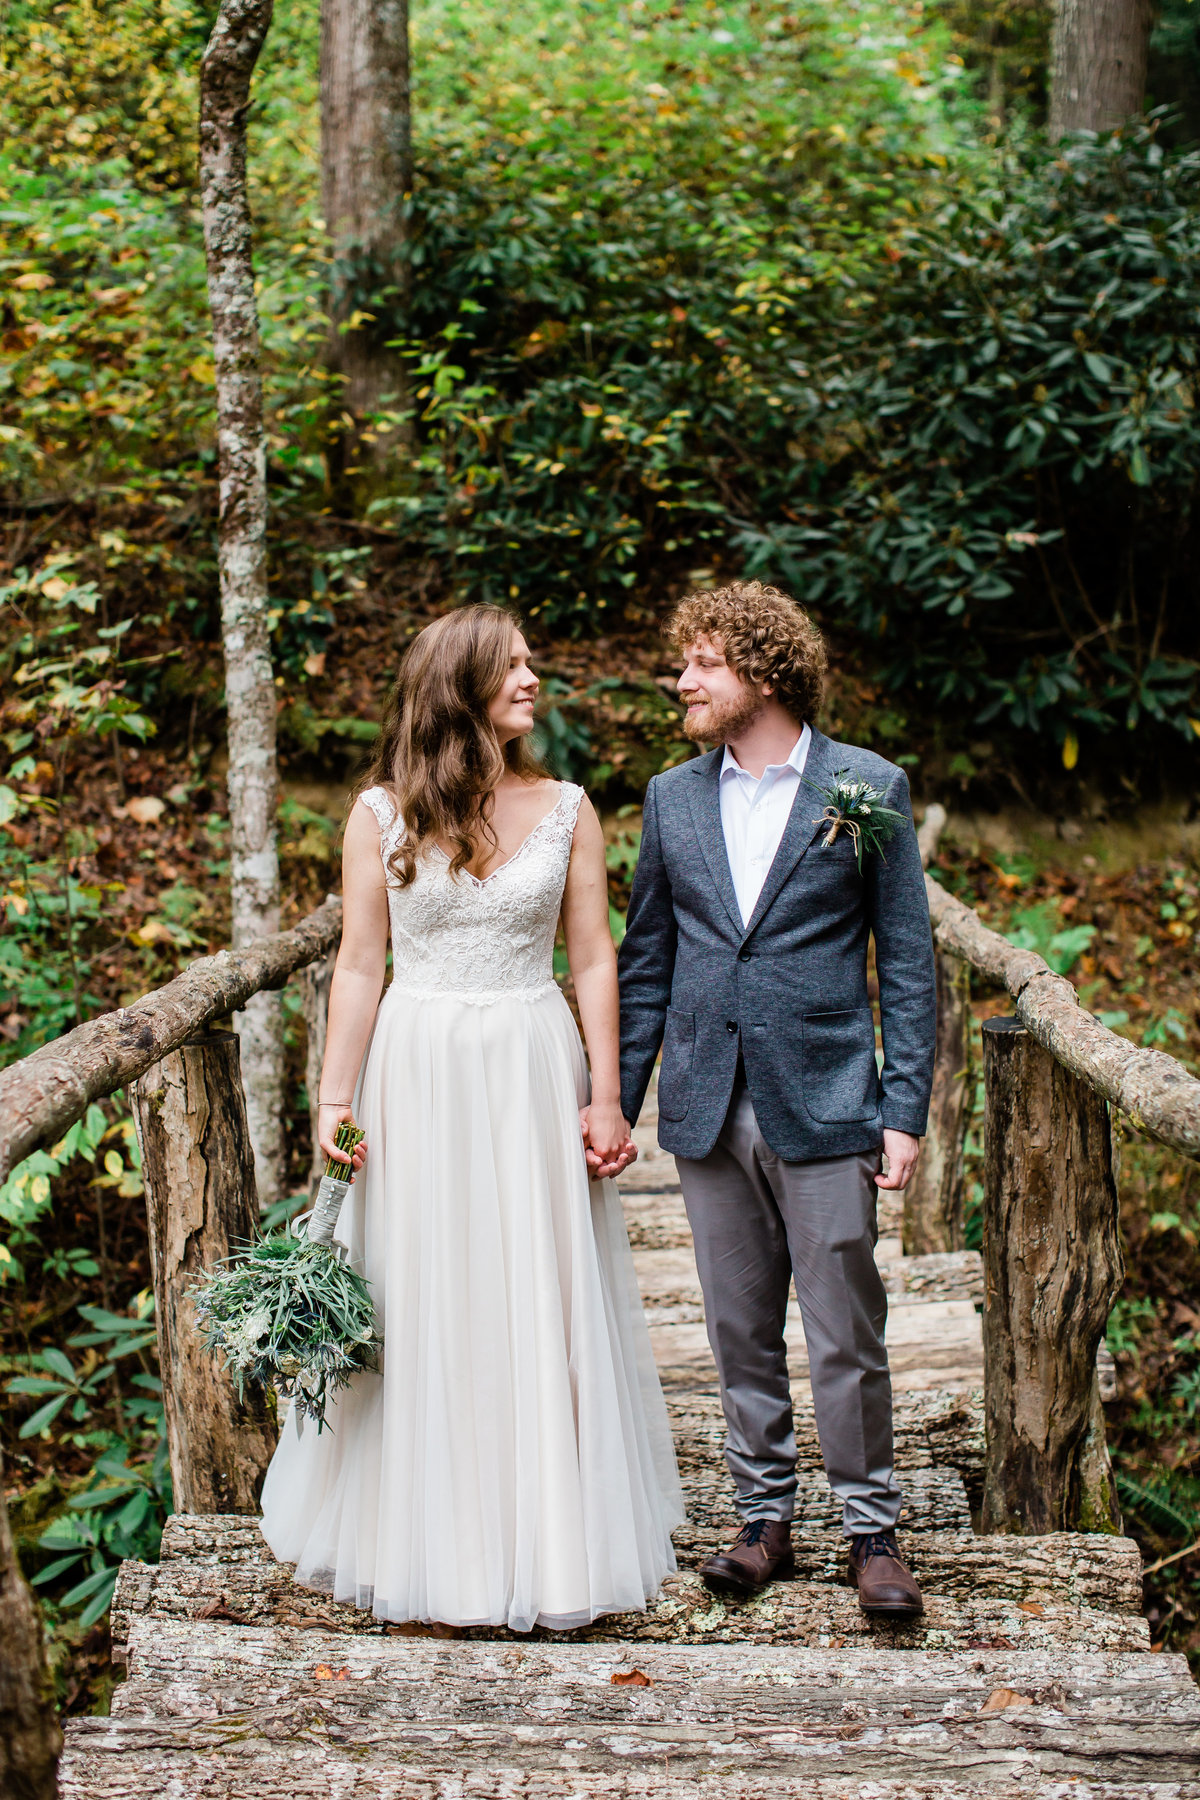 Danielle-Defayette-Photography-Mountain-Laurel-Farm-Wedding-Virginia-152